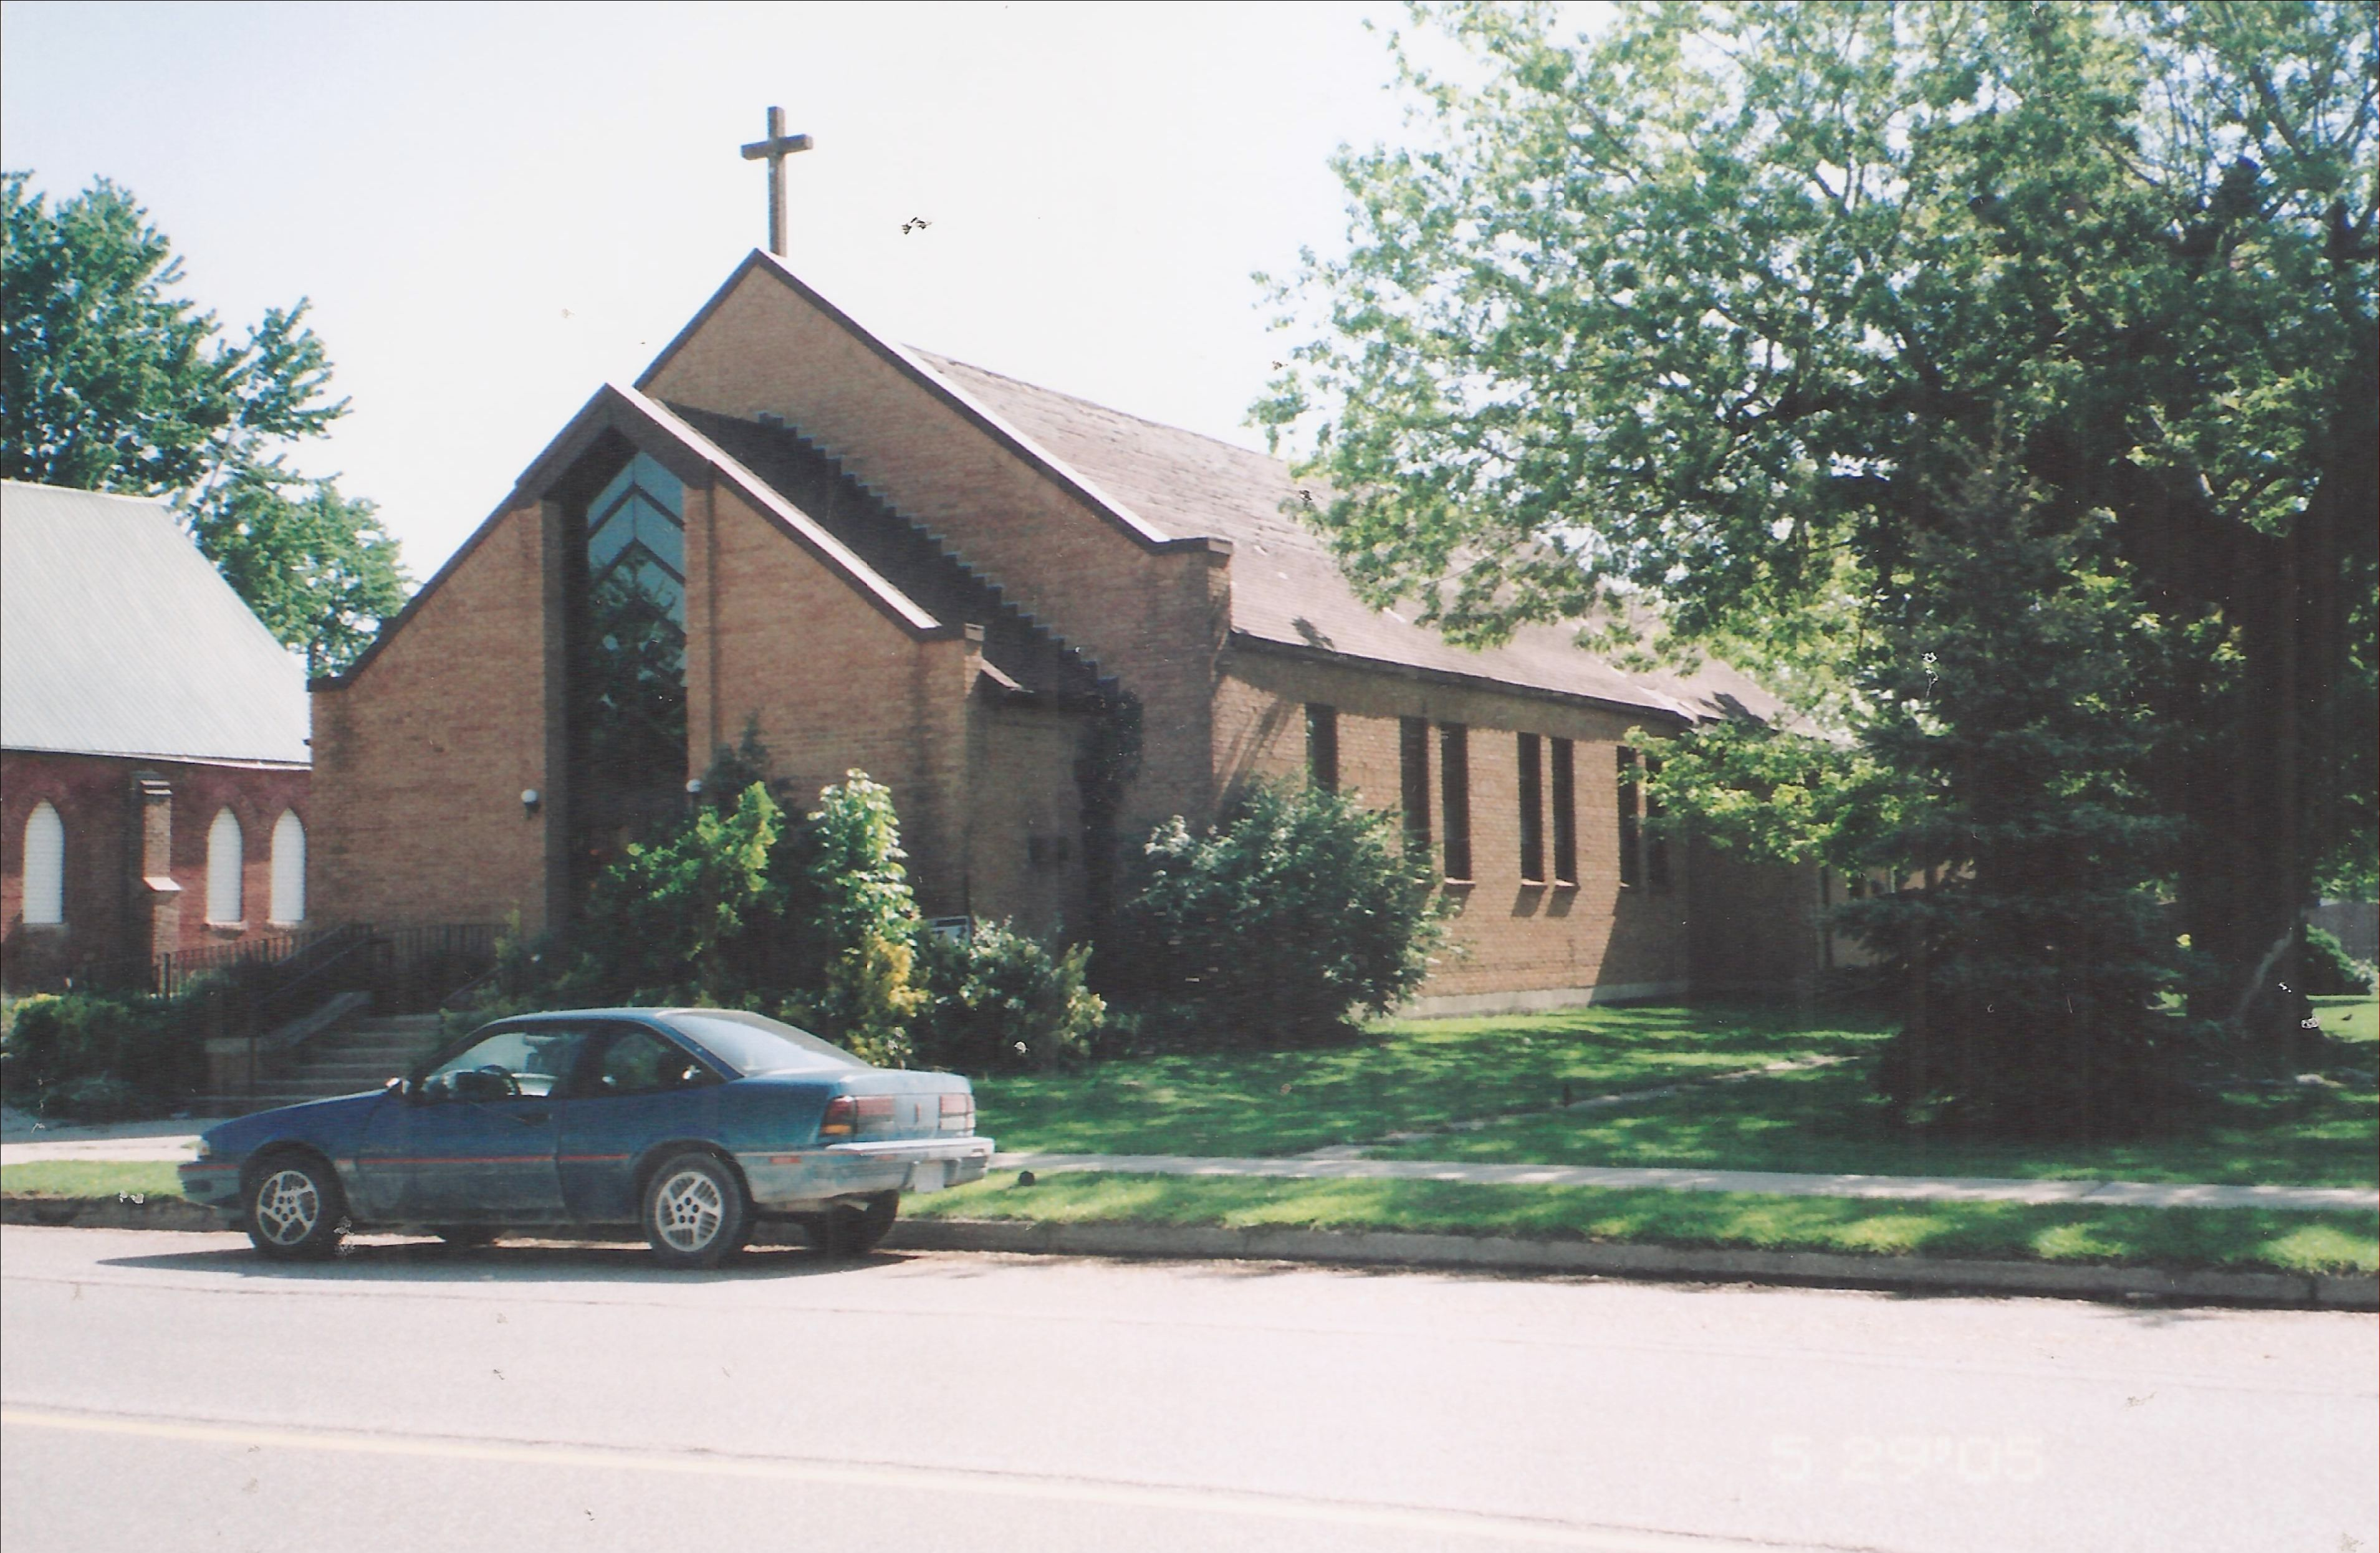 Red brick church with cross on top